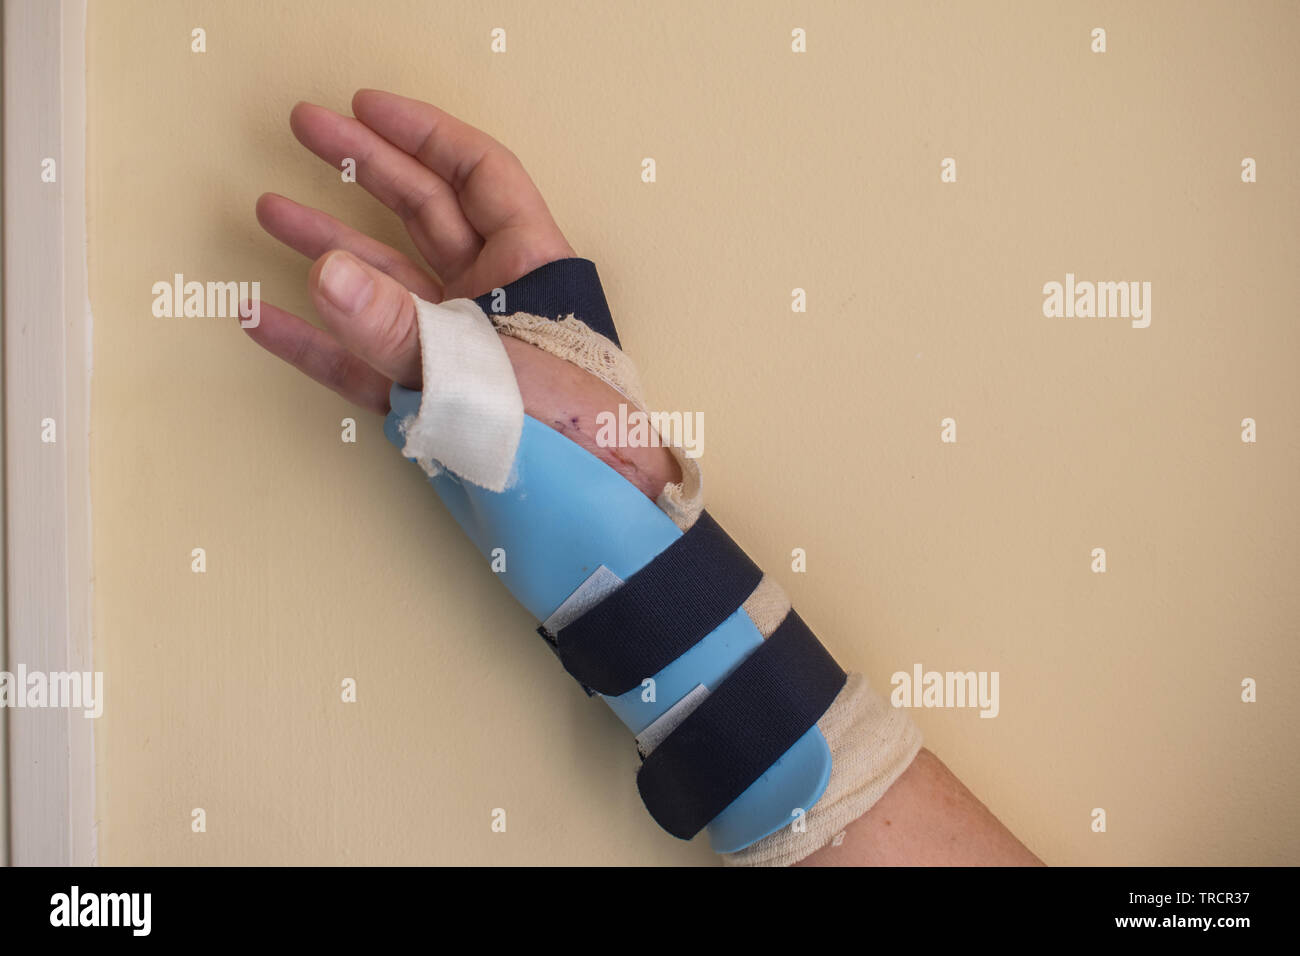 a woman's right wrist in a light cast following thumb joint surgery - Stock Image